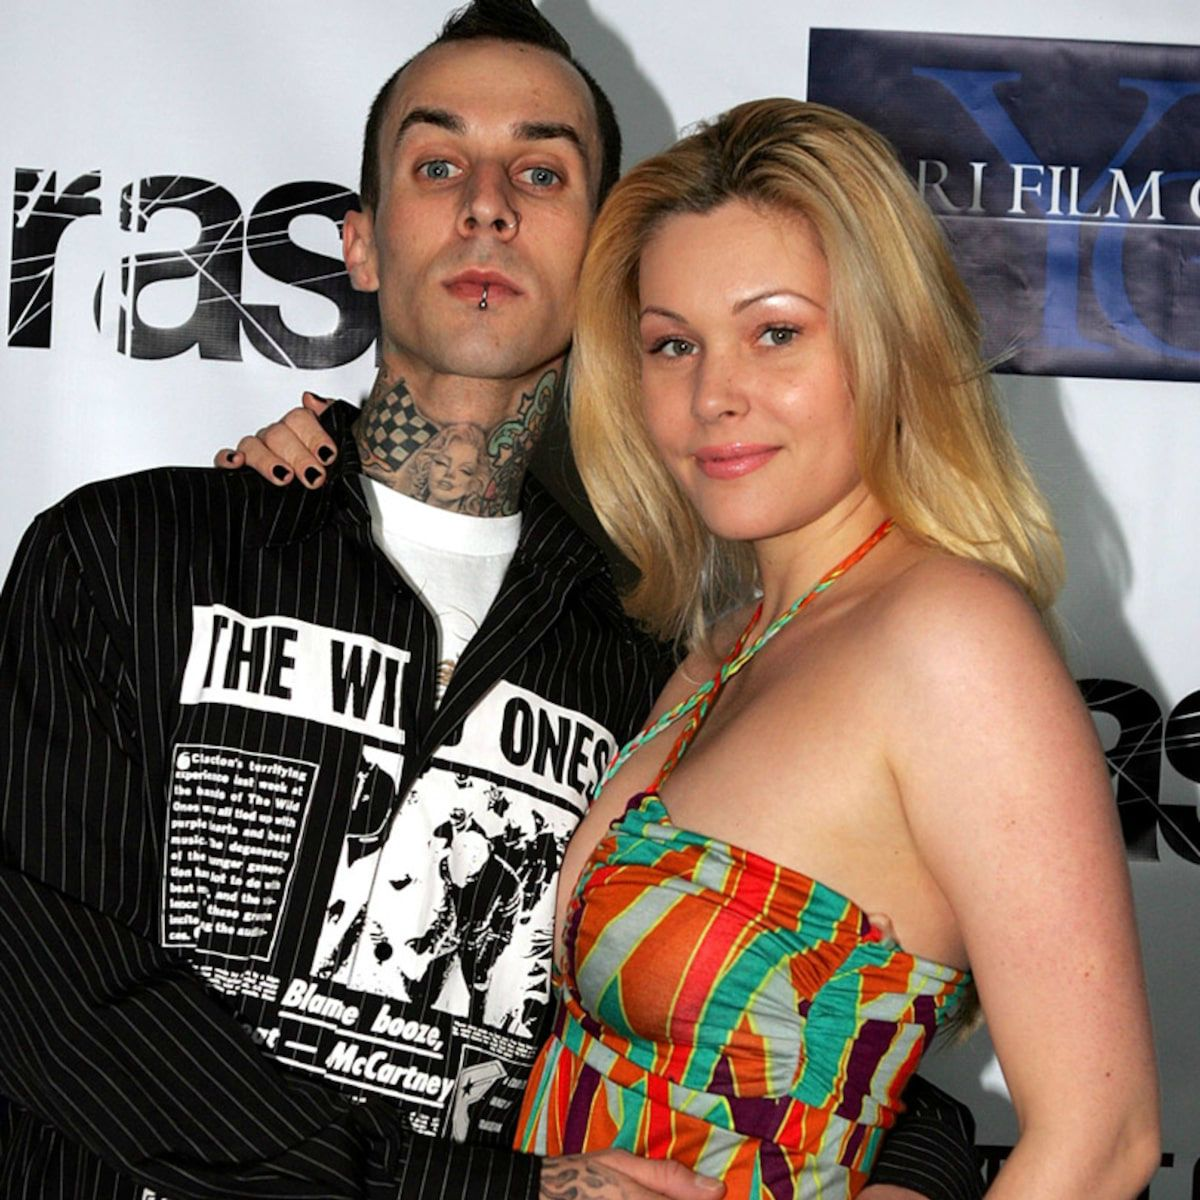 Travis Barker with his ex-wife Shanna